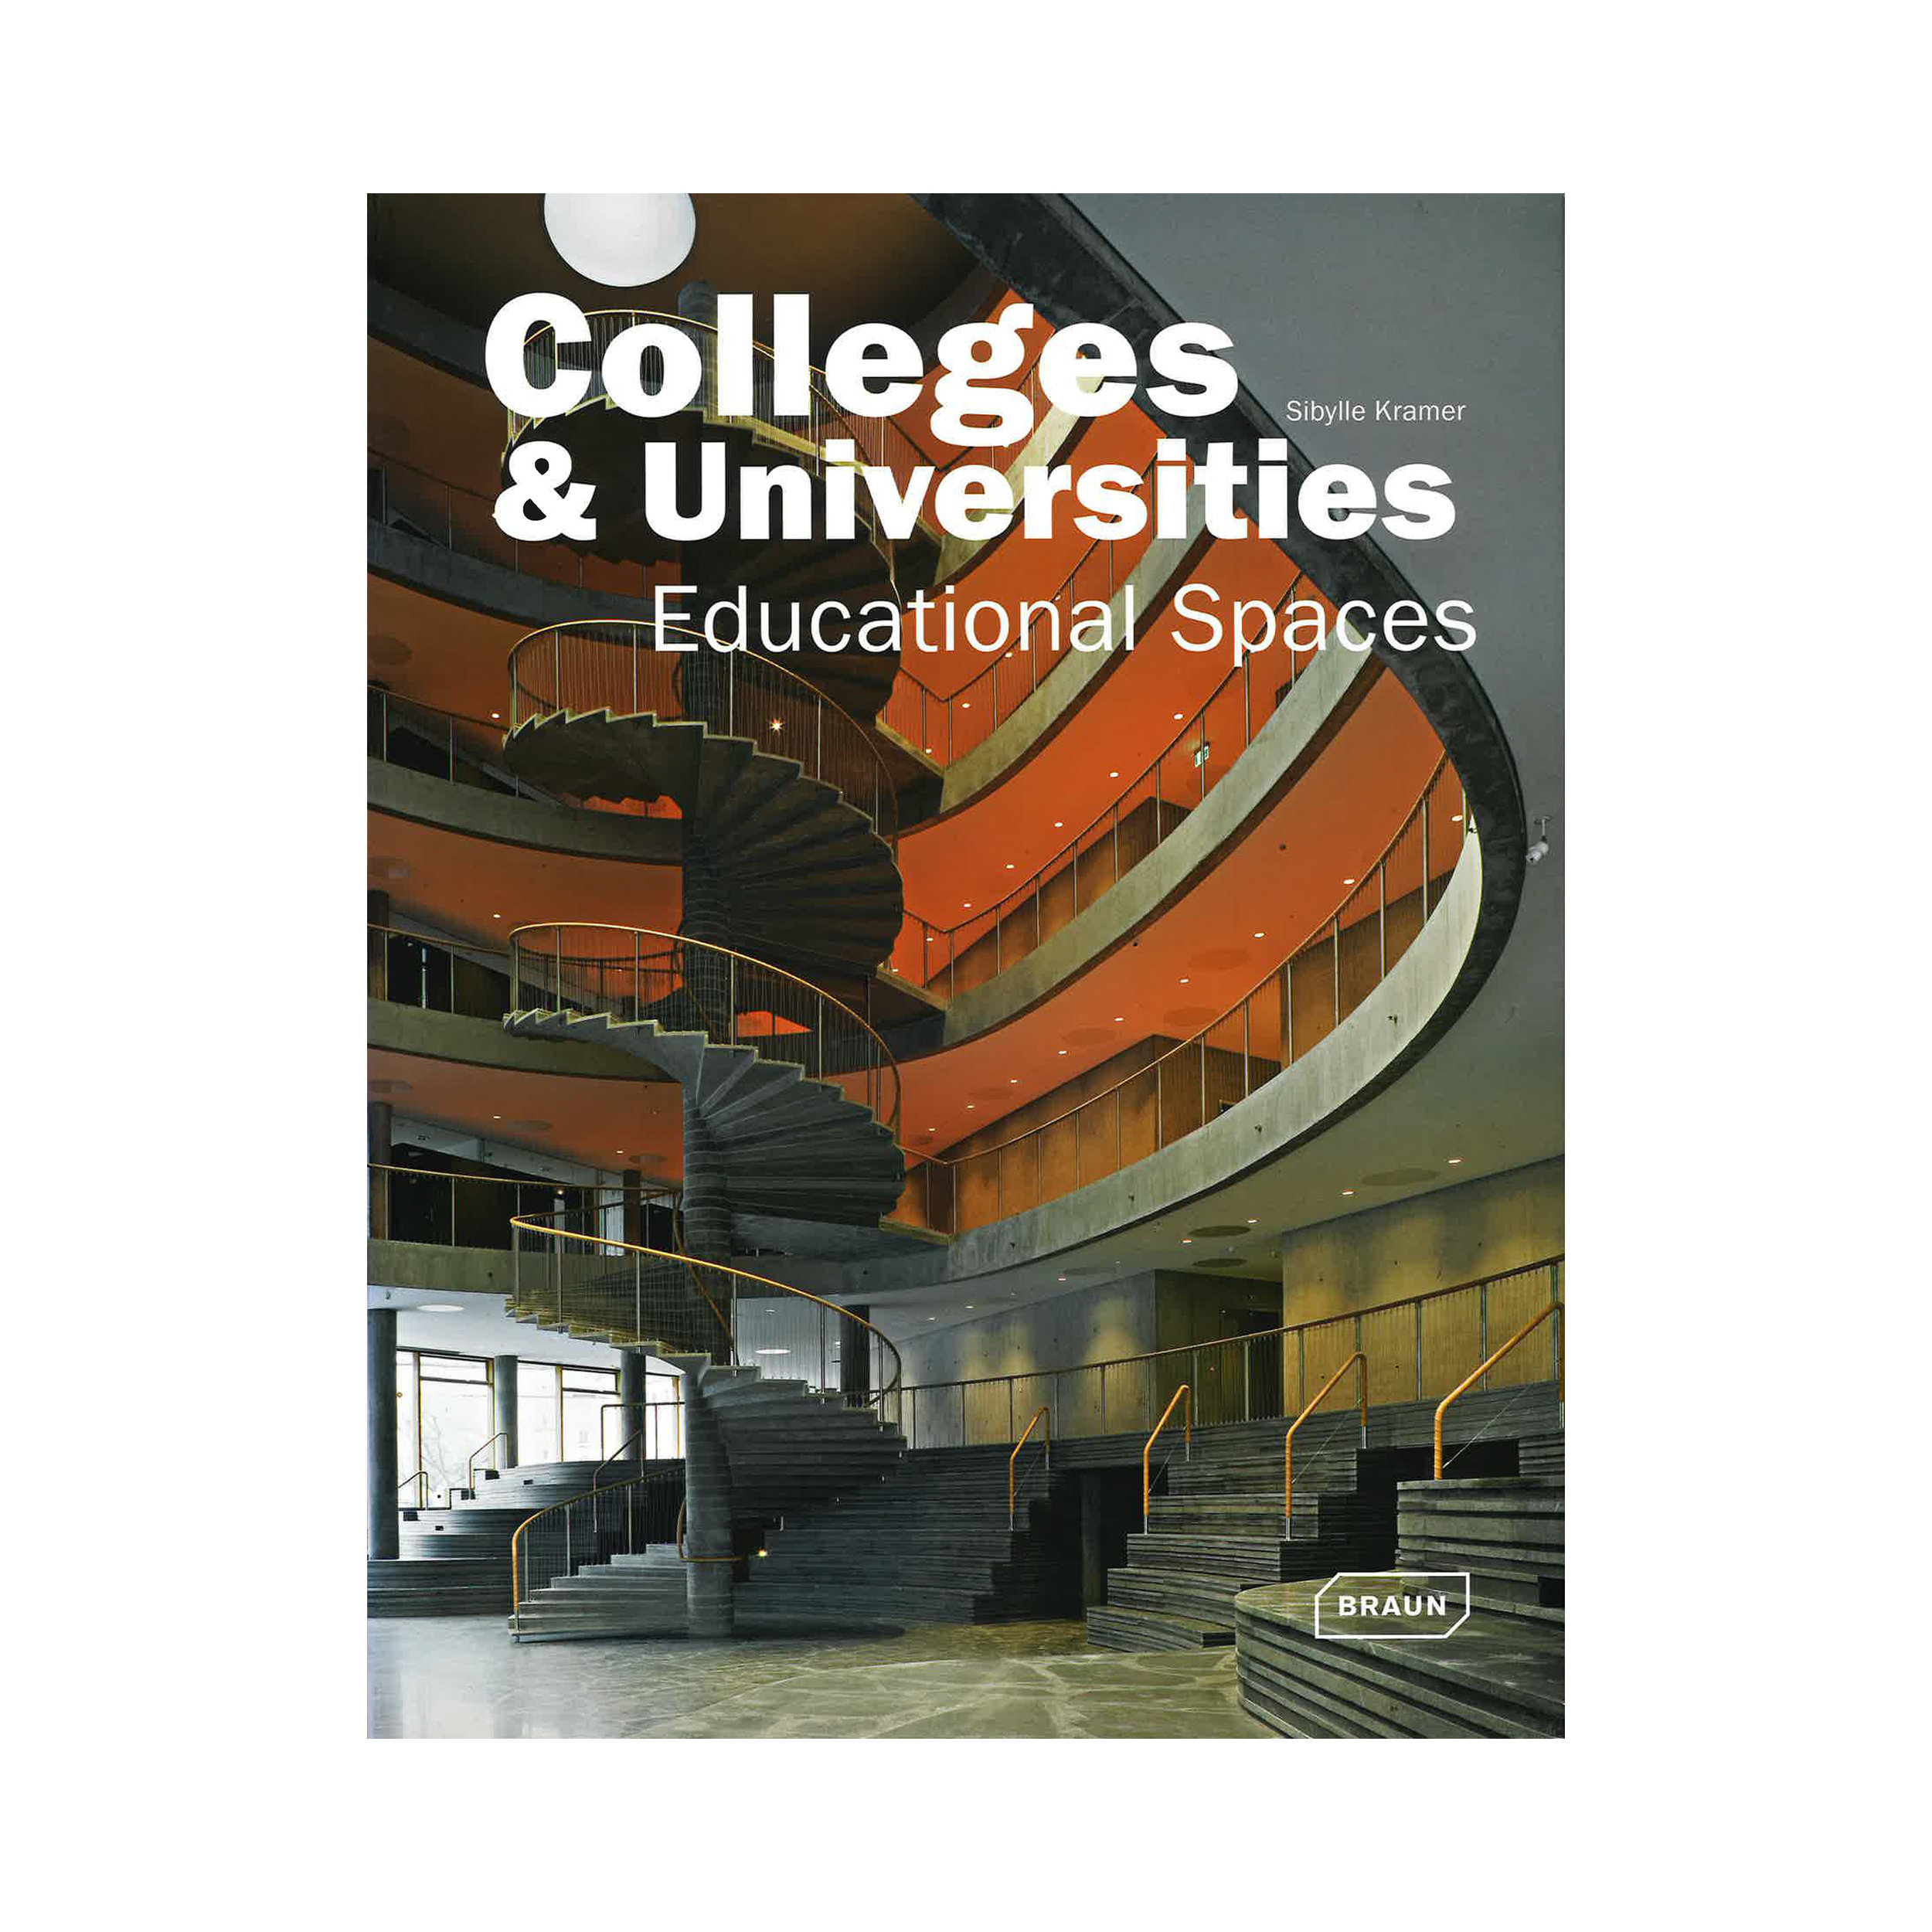 Colleges & Universities